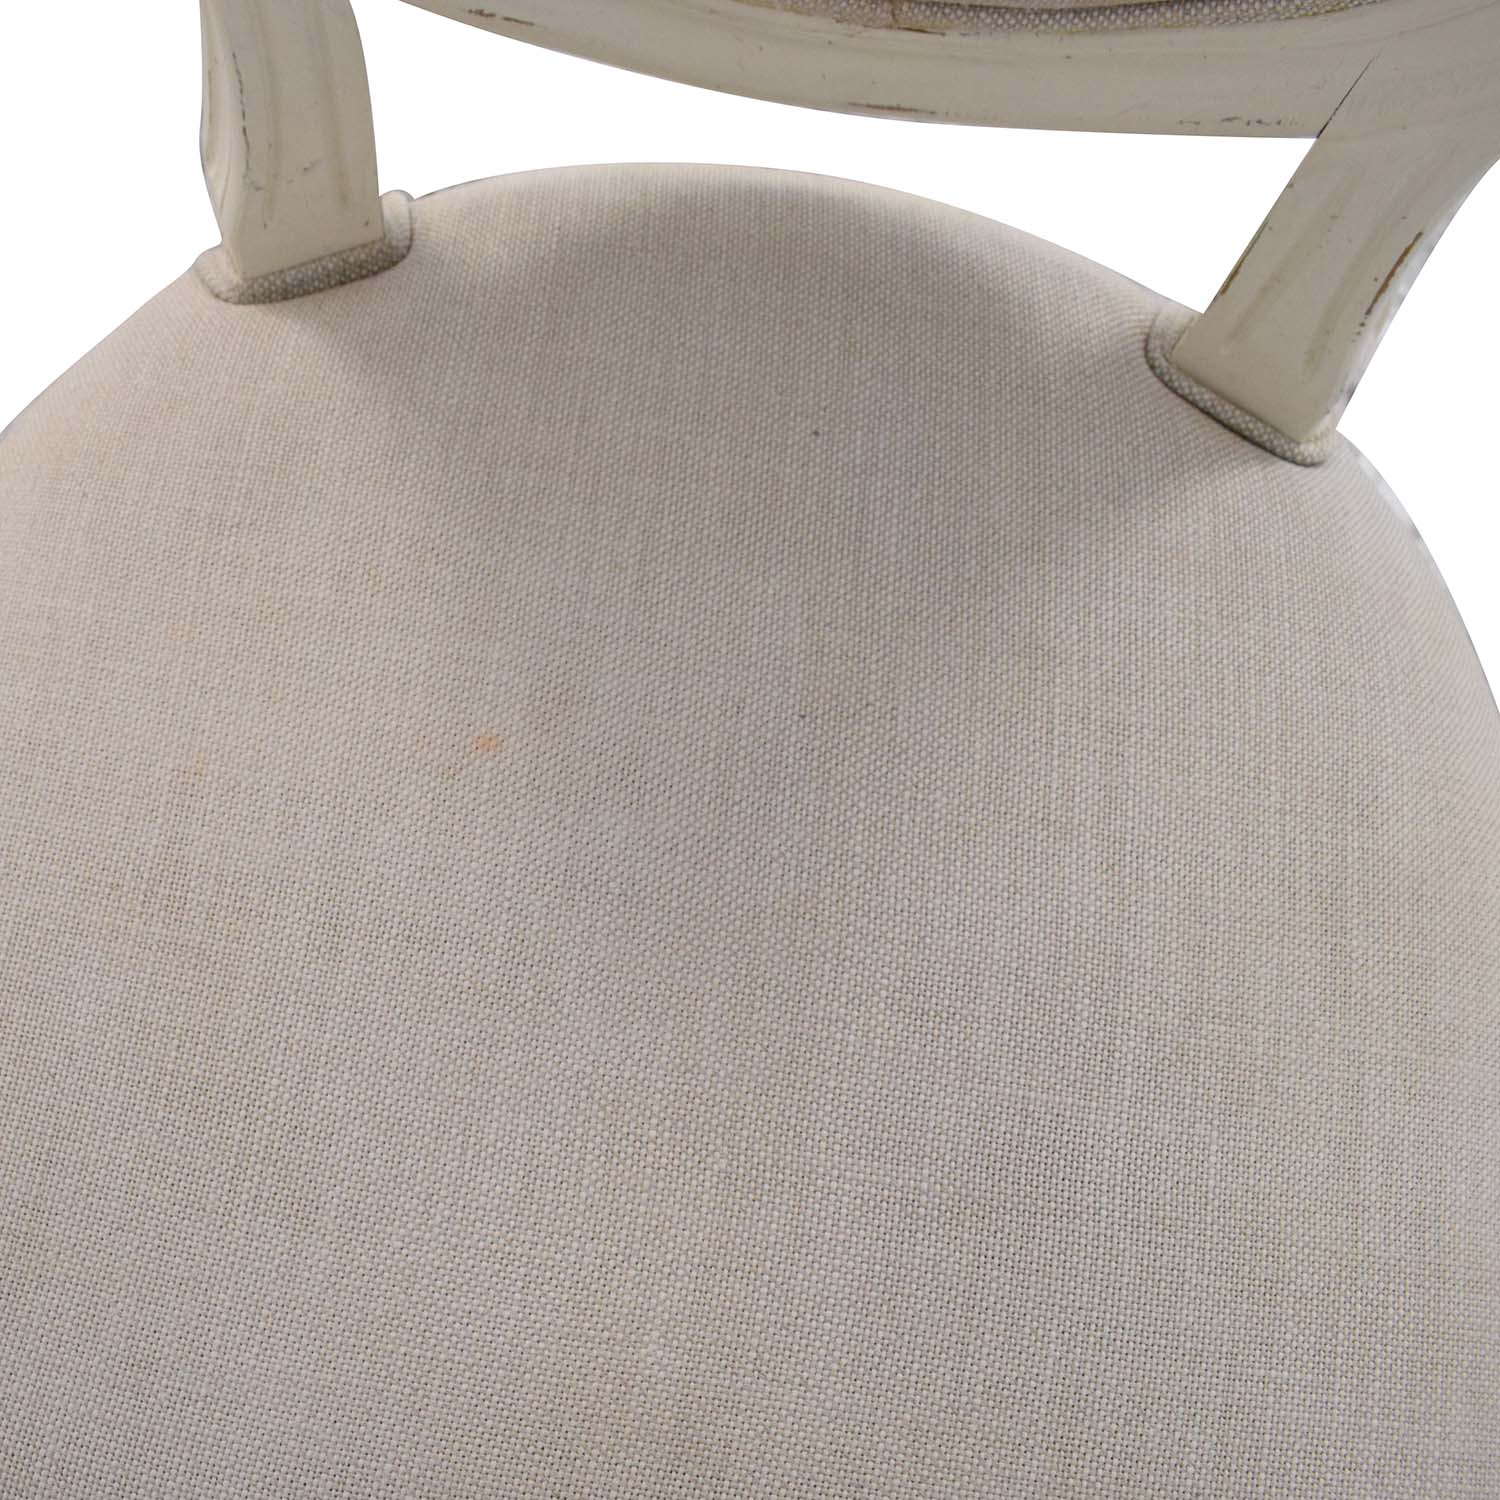 Restoration Hardware Restoration Hardware Vintage French Round Fabric Stools second hand